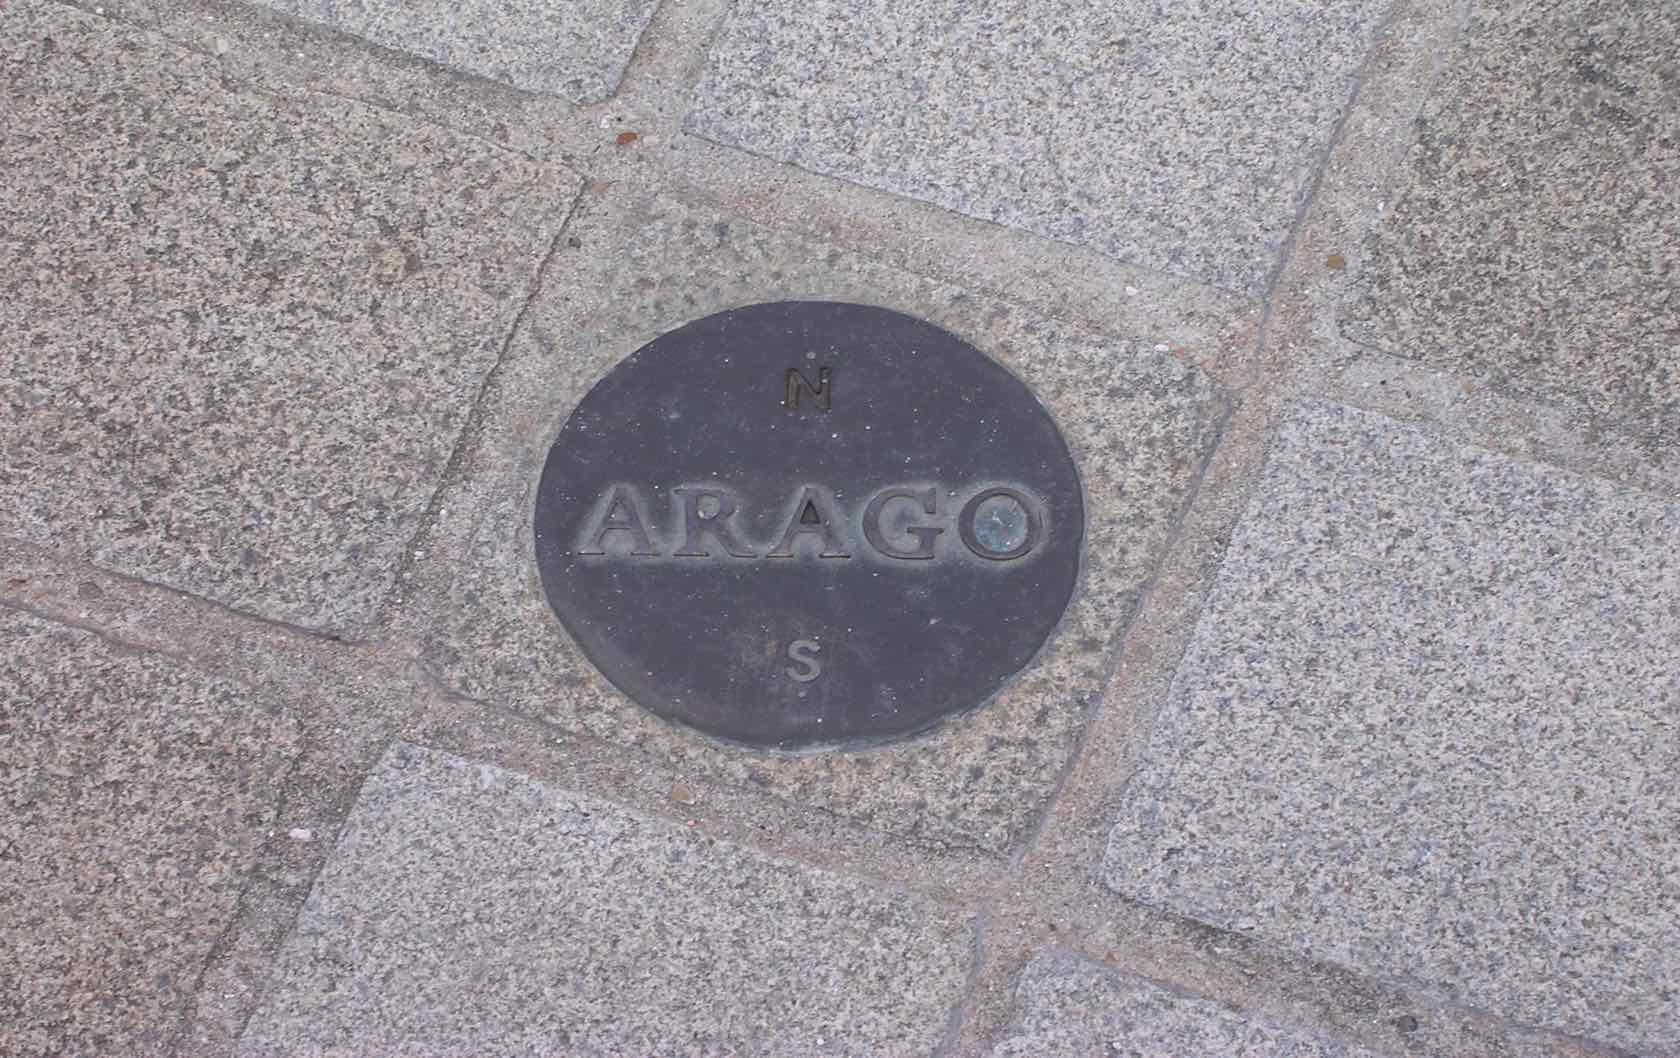 Offbeat Things to See in Paris ARAGO Meridian Markers